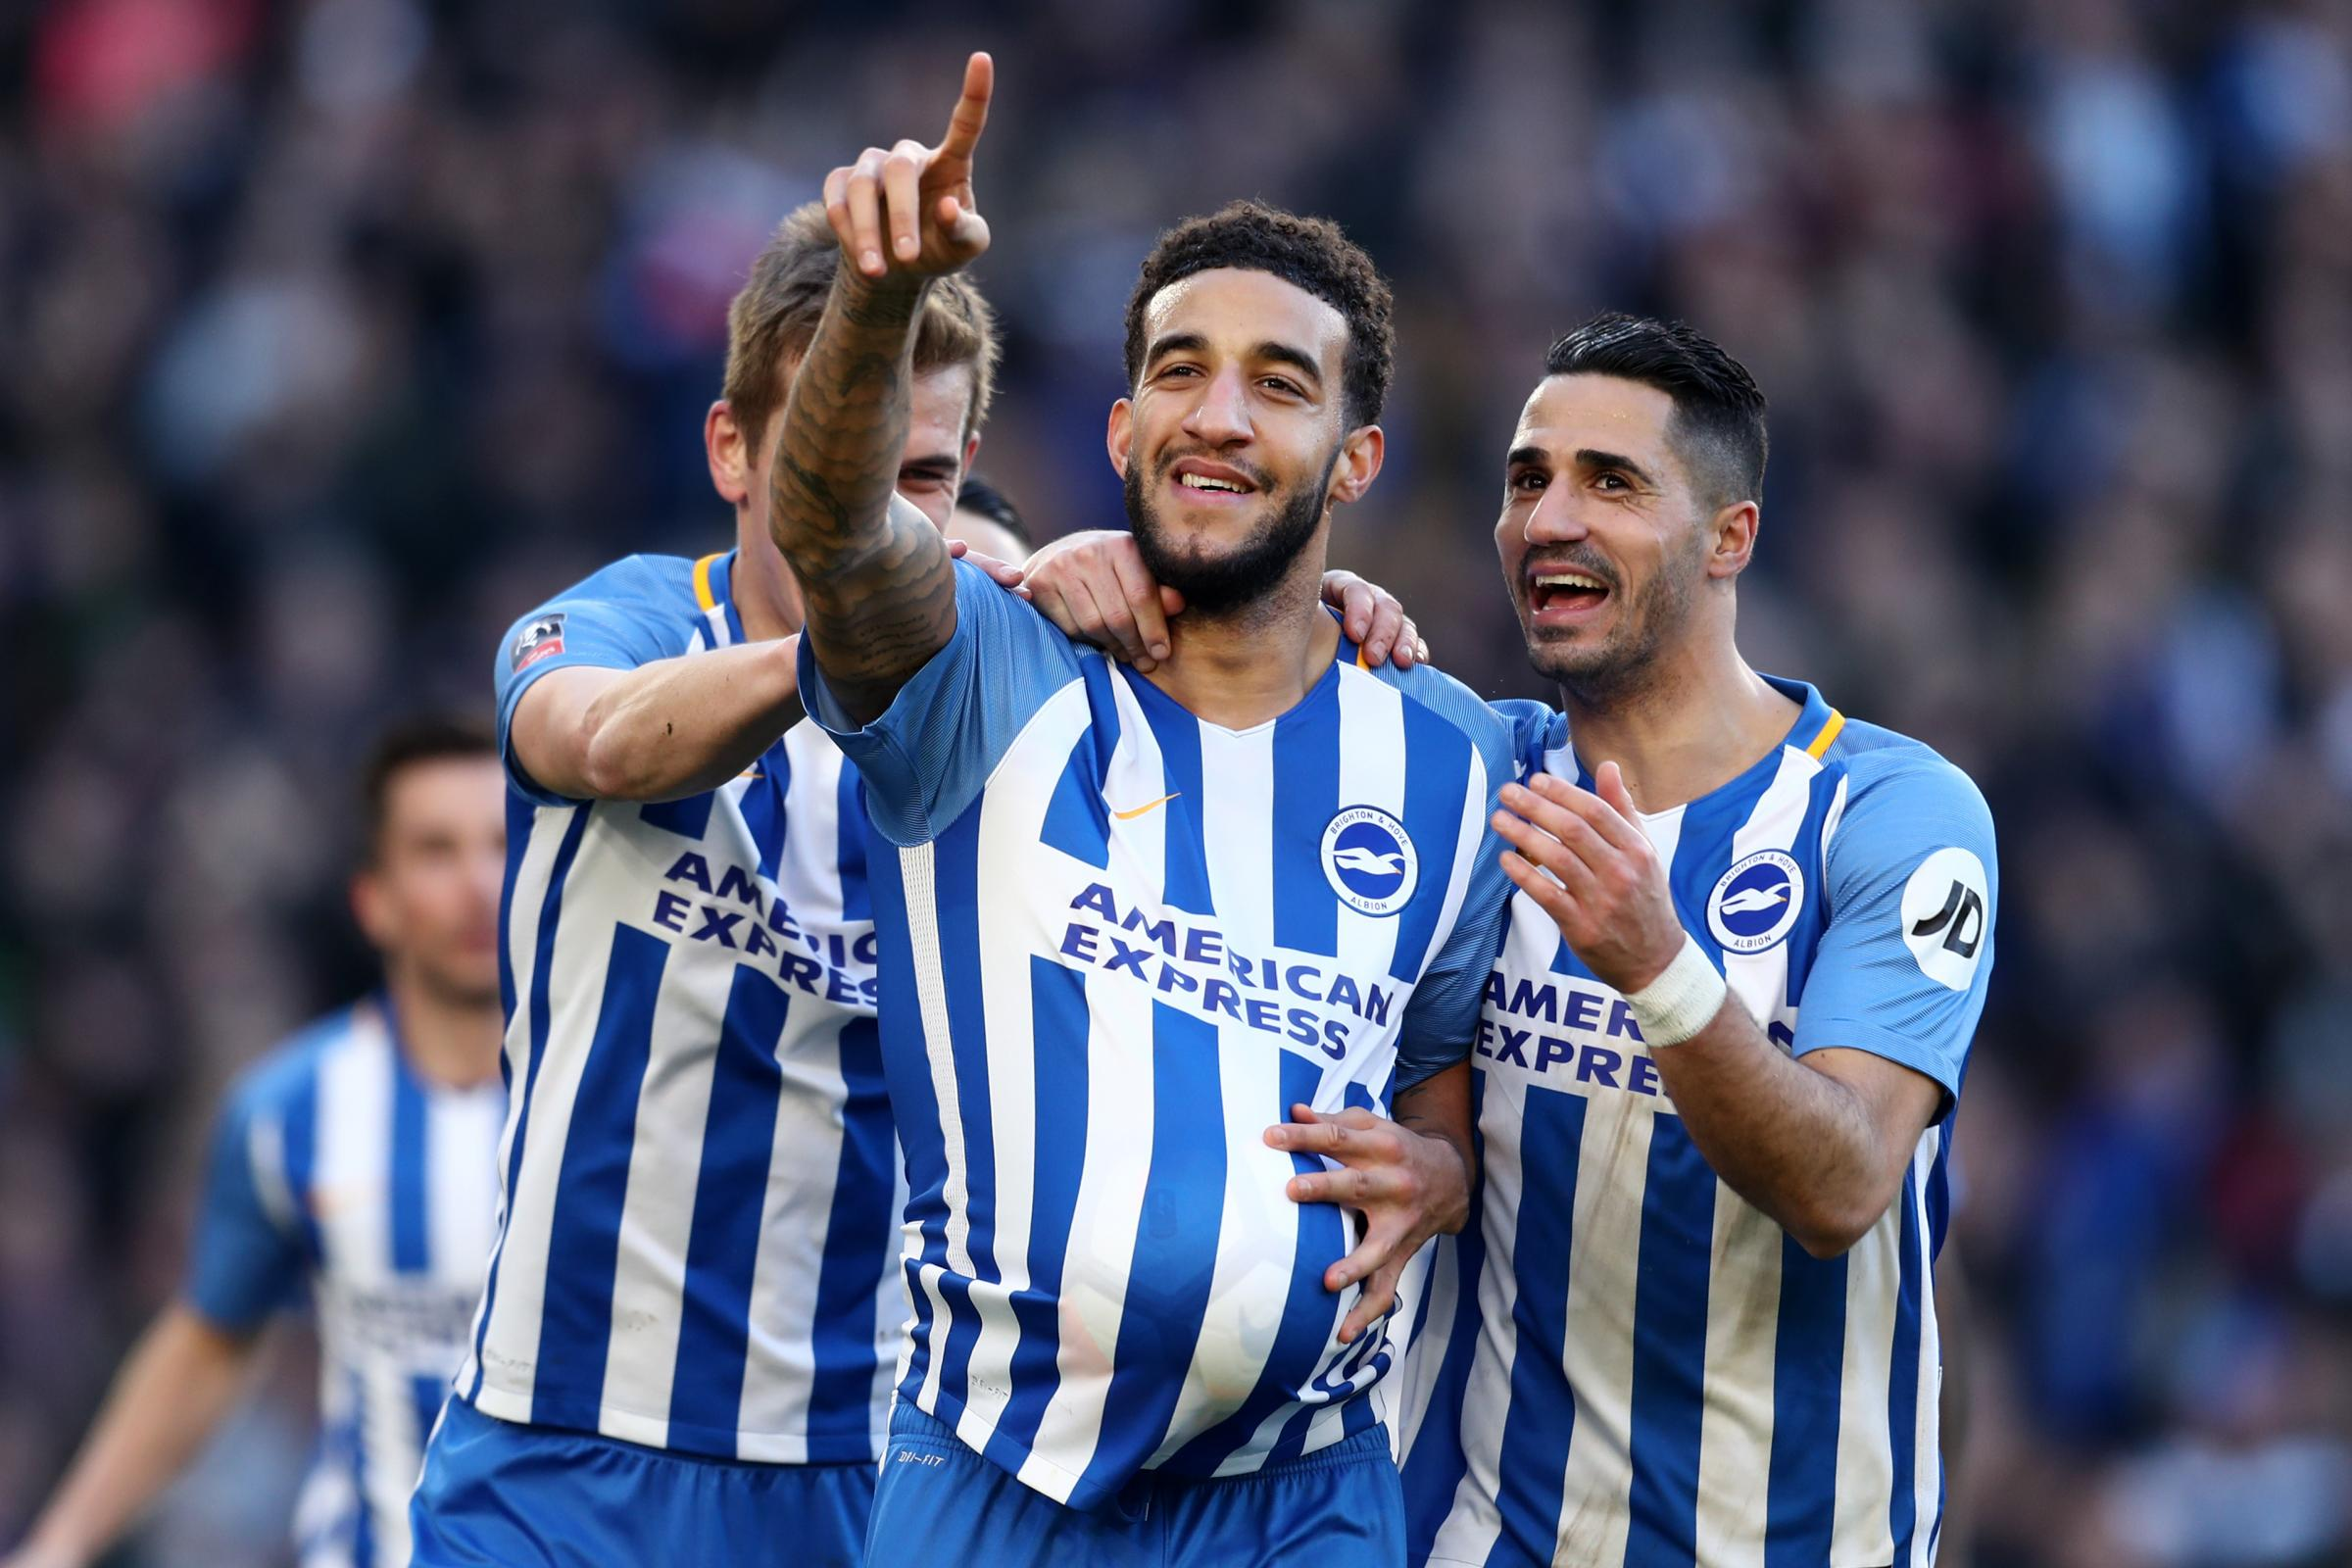 Goldson celebrates after scoring against Coventry in the FA Cup (photo Getty Images)